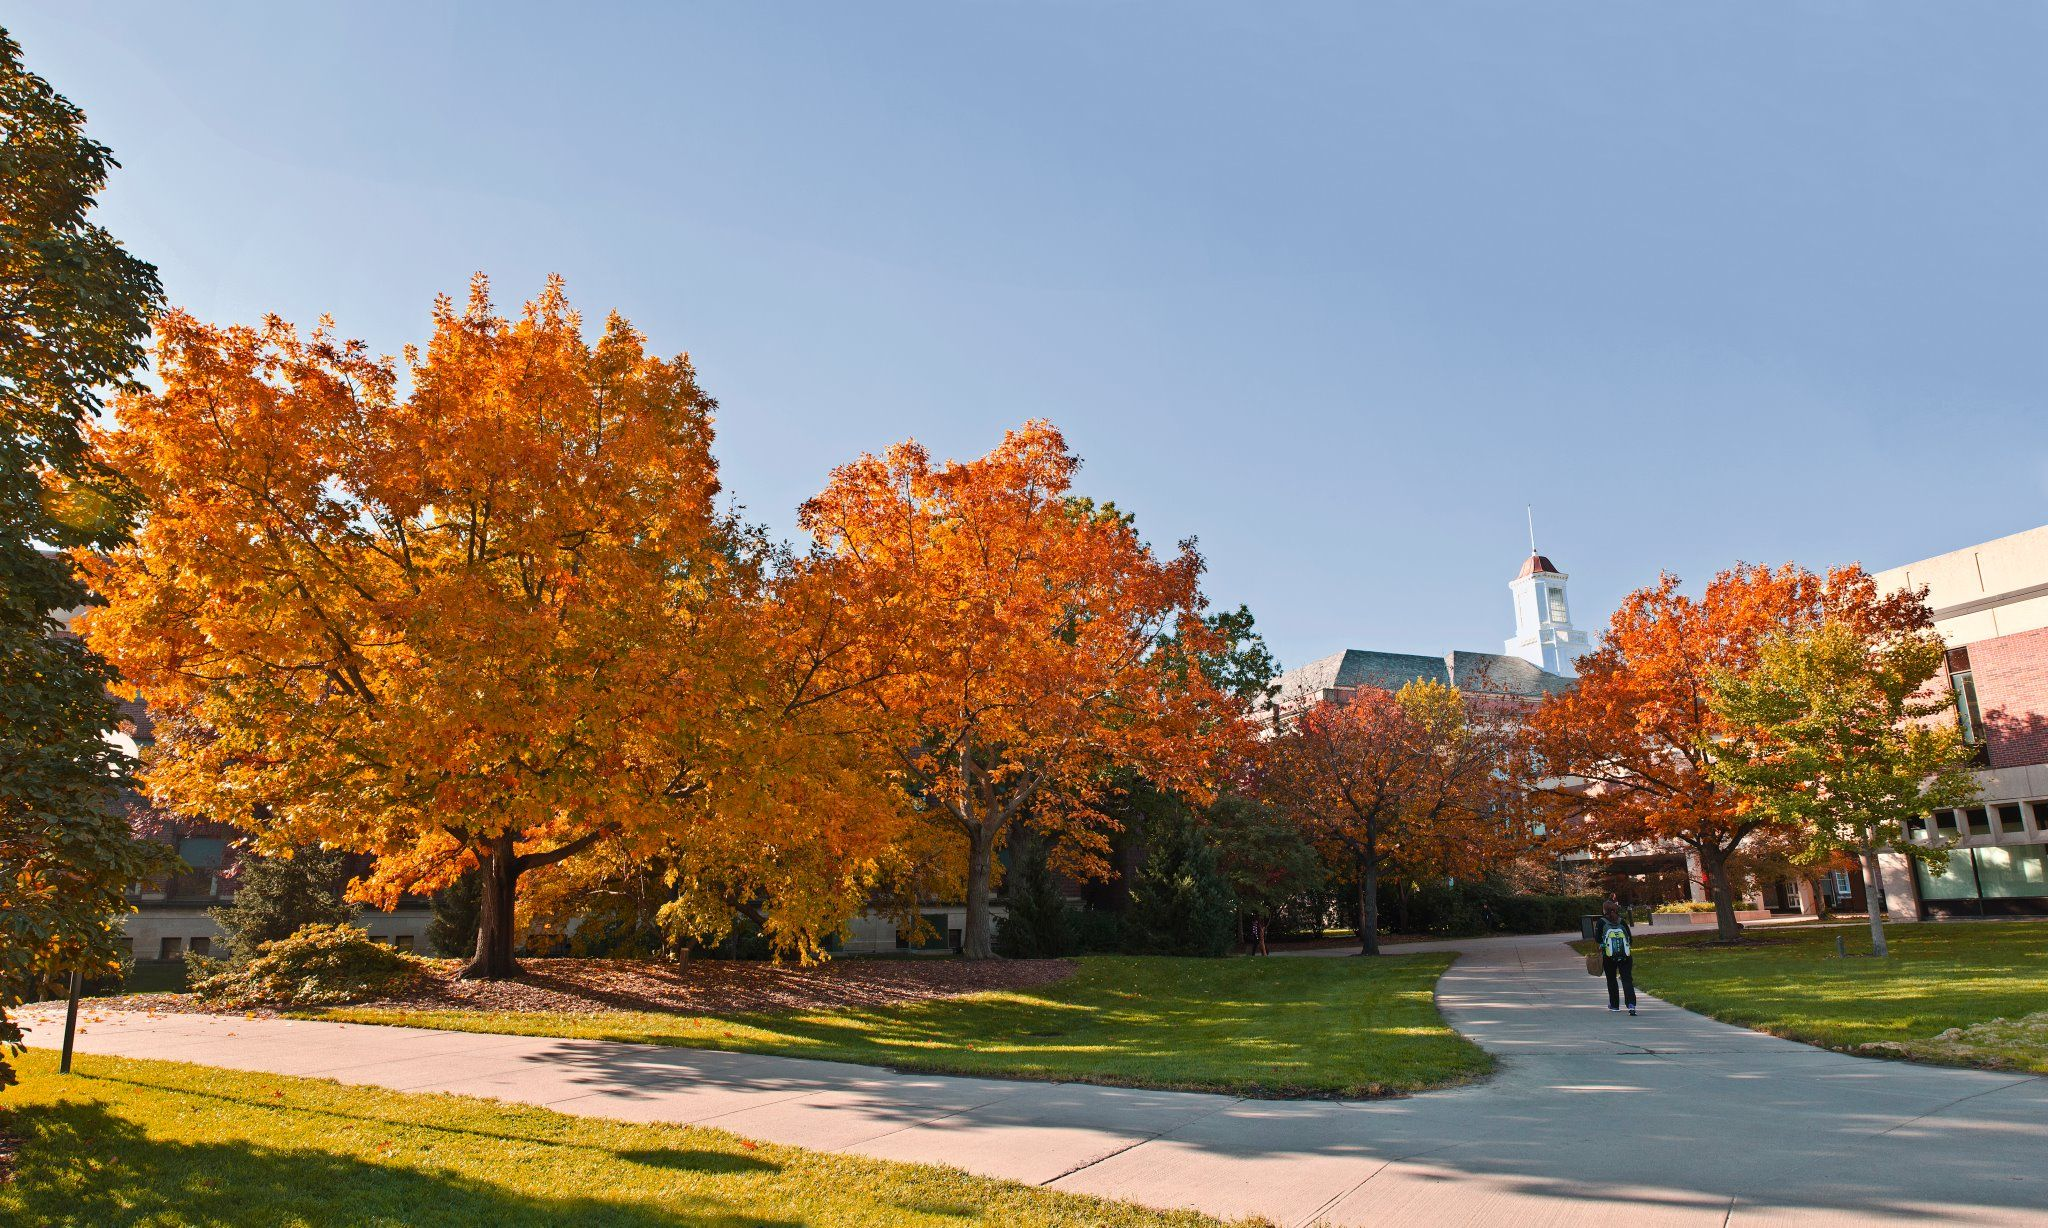 Beautiful Picture Of The University Of Nebraska Lincoln Campus In The Fall University Of Nebraska Lincoln Thunder Photography Nebraska